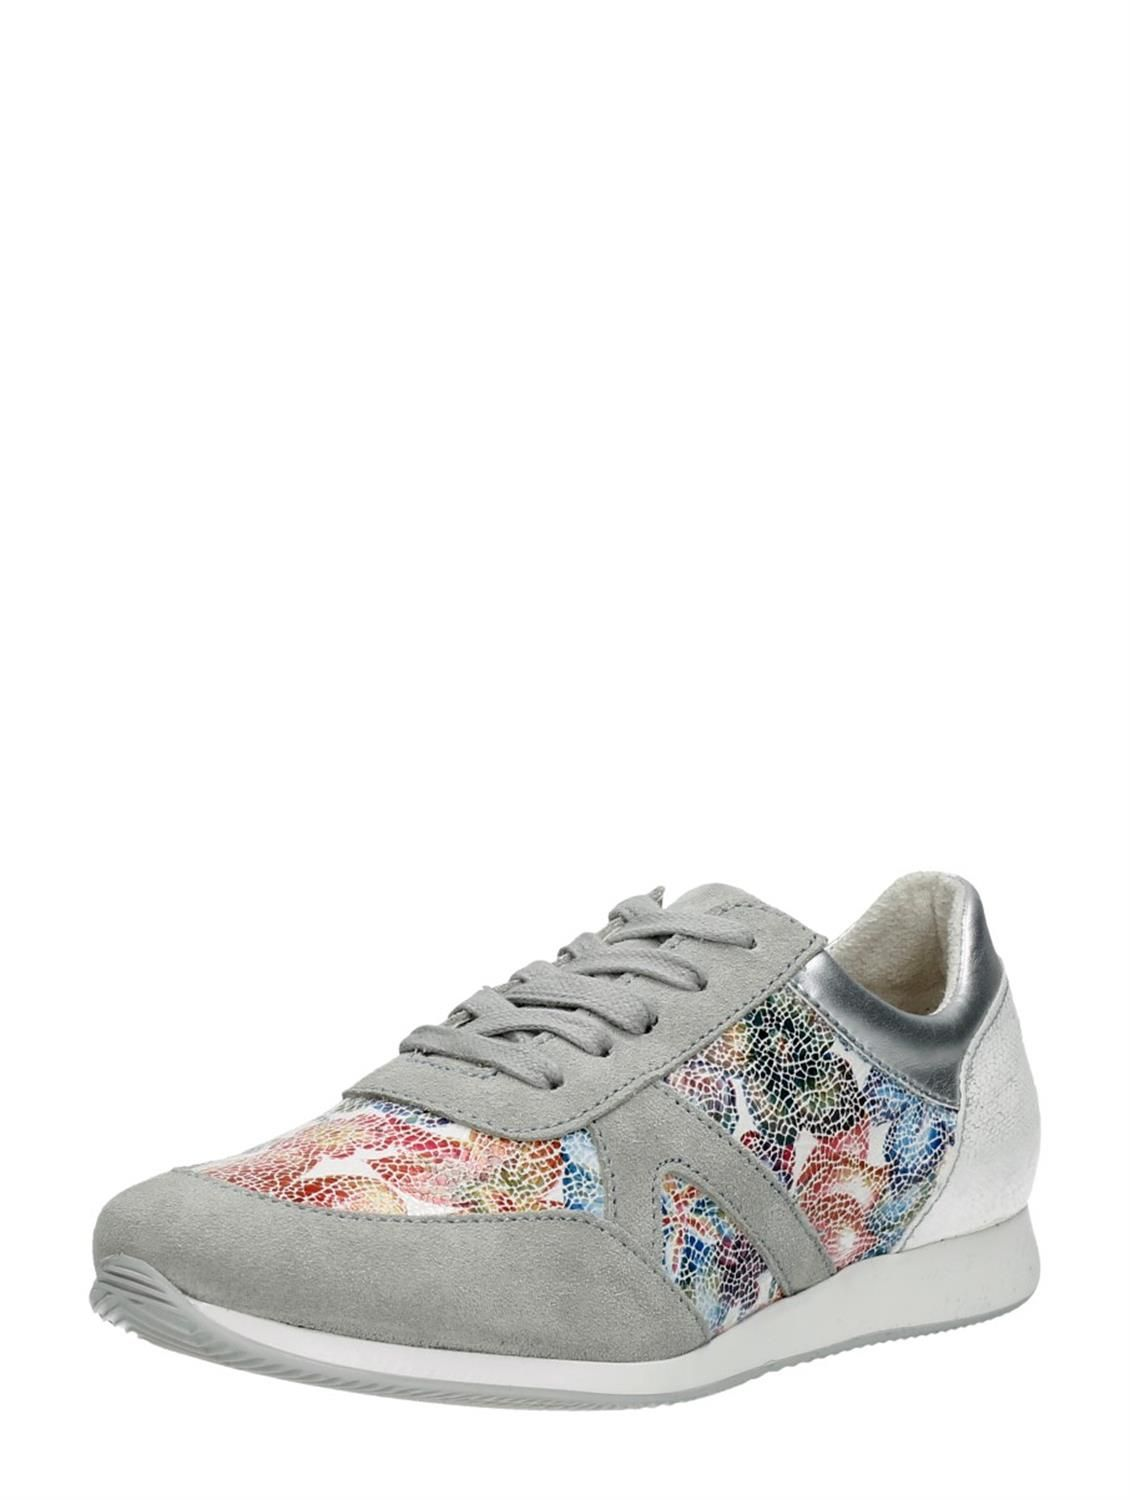 finest selection 5c266 bb816 Hippe damessneaker van Tamaris met bloemenprint flowerpower